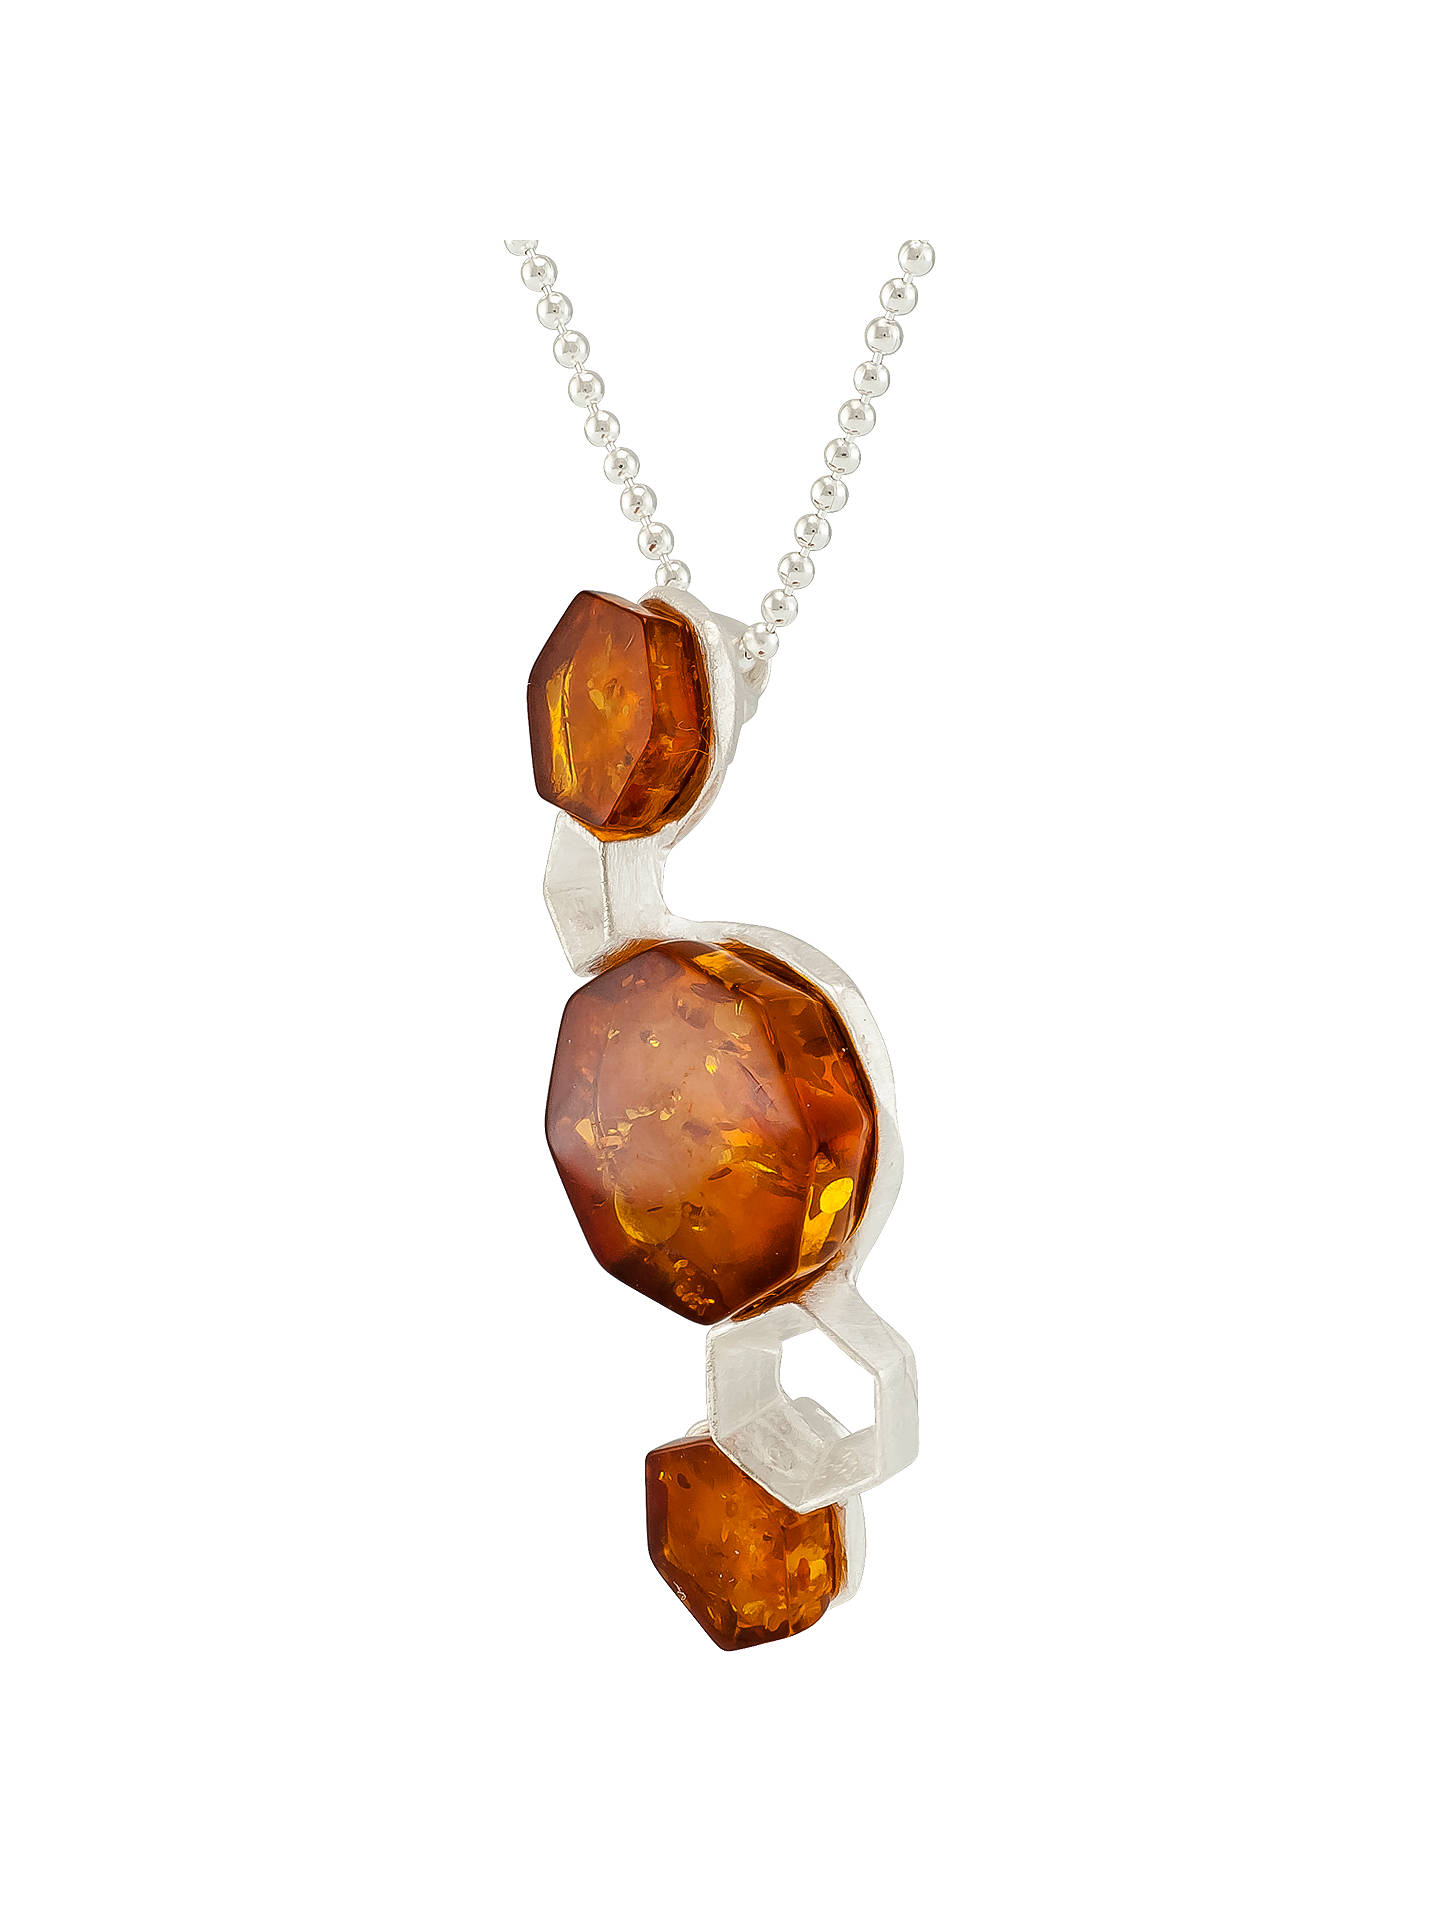 Buy Be-Jewelled Hexagonal Cognac Amber Pendant Necklace, Silver/Cognac Online at johnlewis.com